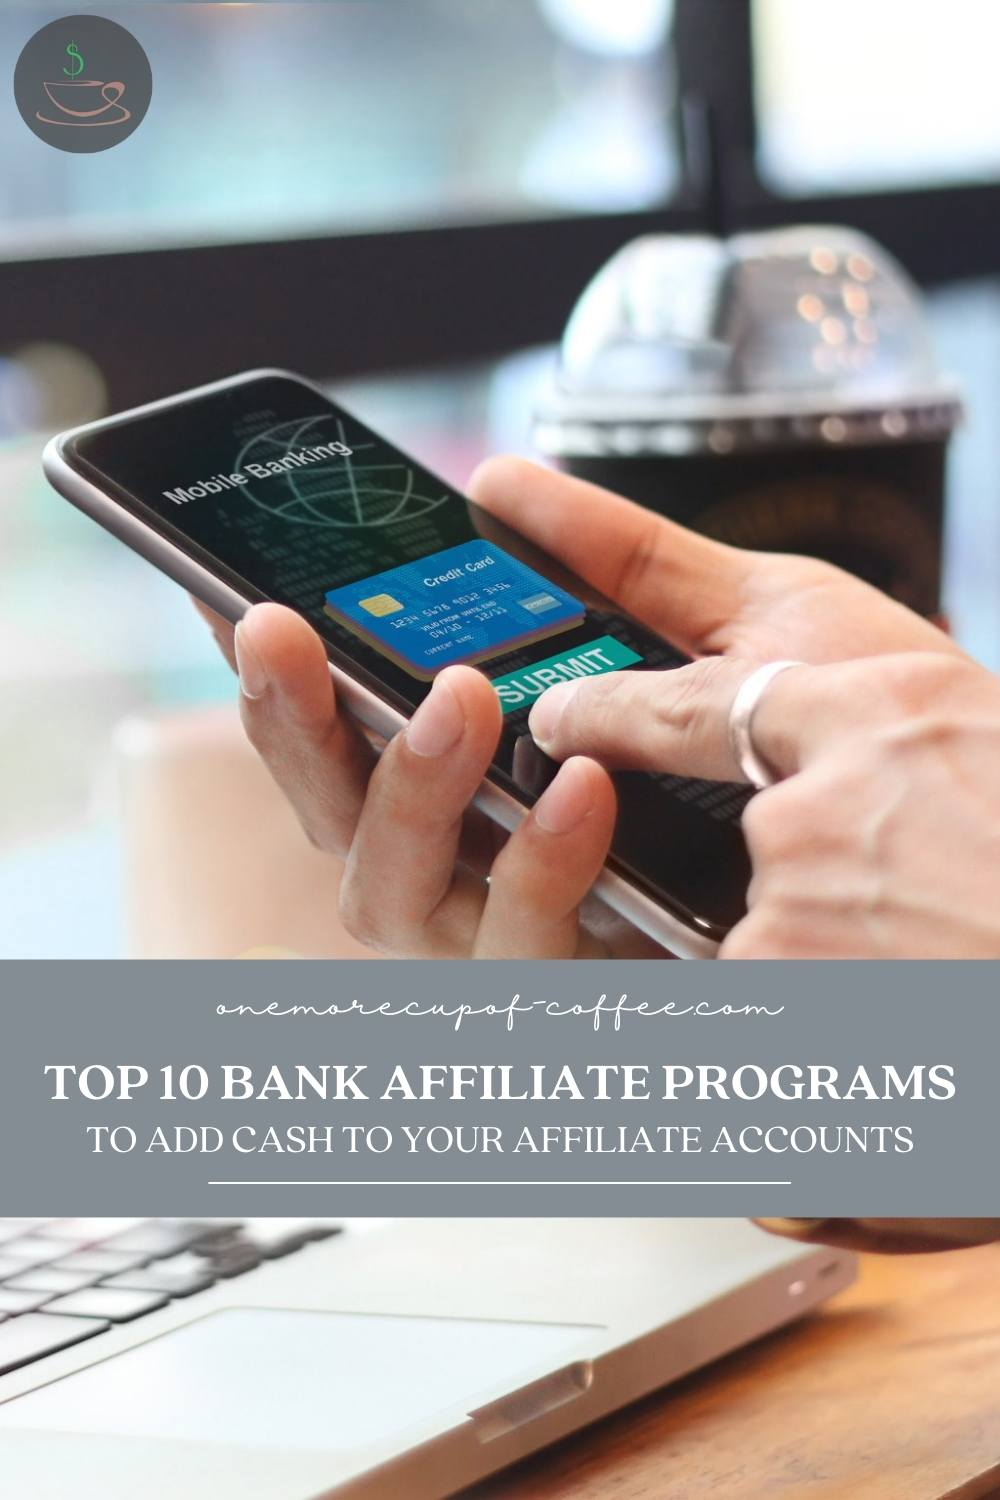 """closeup image of hands holding a mobile phone with an app for mobile banking; with text overlay """"Top 10 Bank Affiliate Programs To Add Cash To Your Affiliate Accounts"""""""